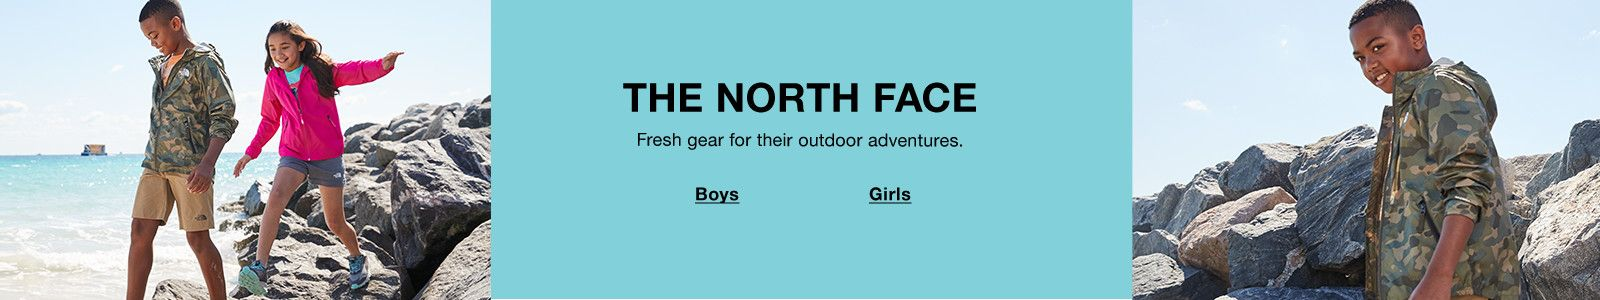 The North Face, Fresh gear for their outdoor adventures, Boys, Girls